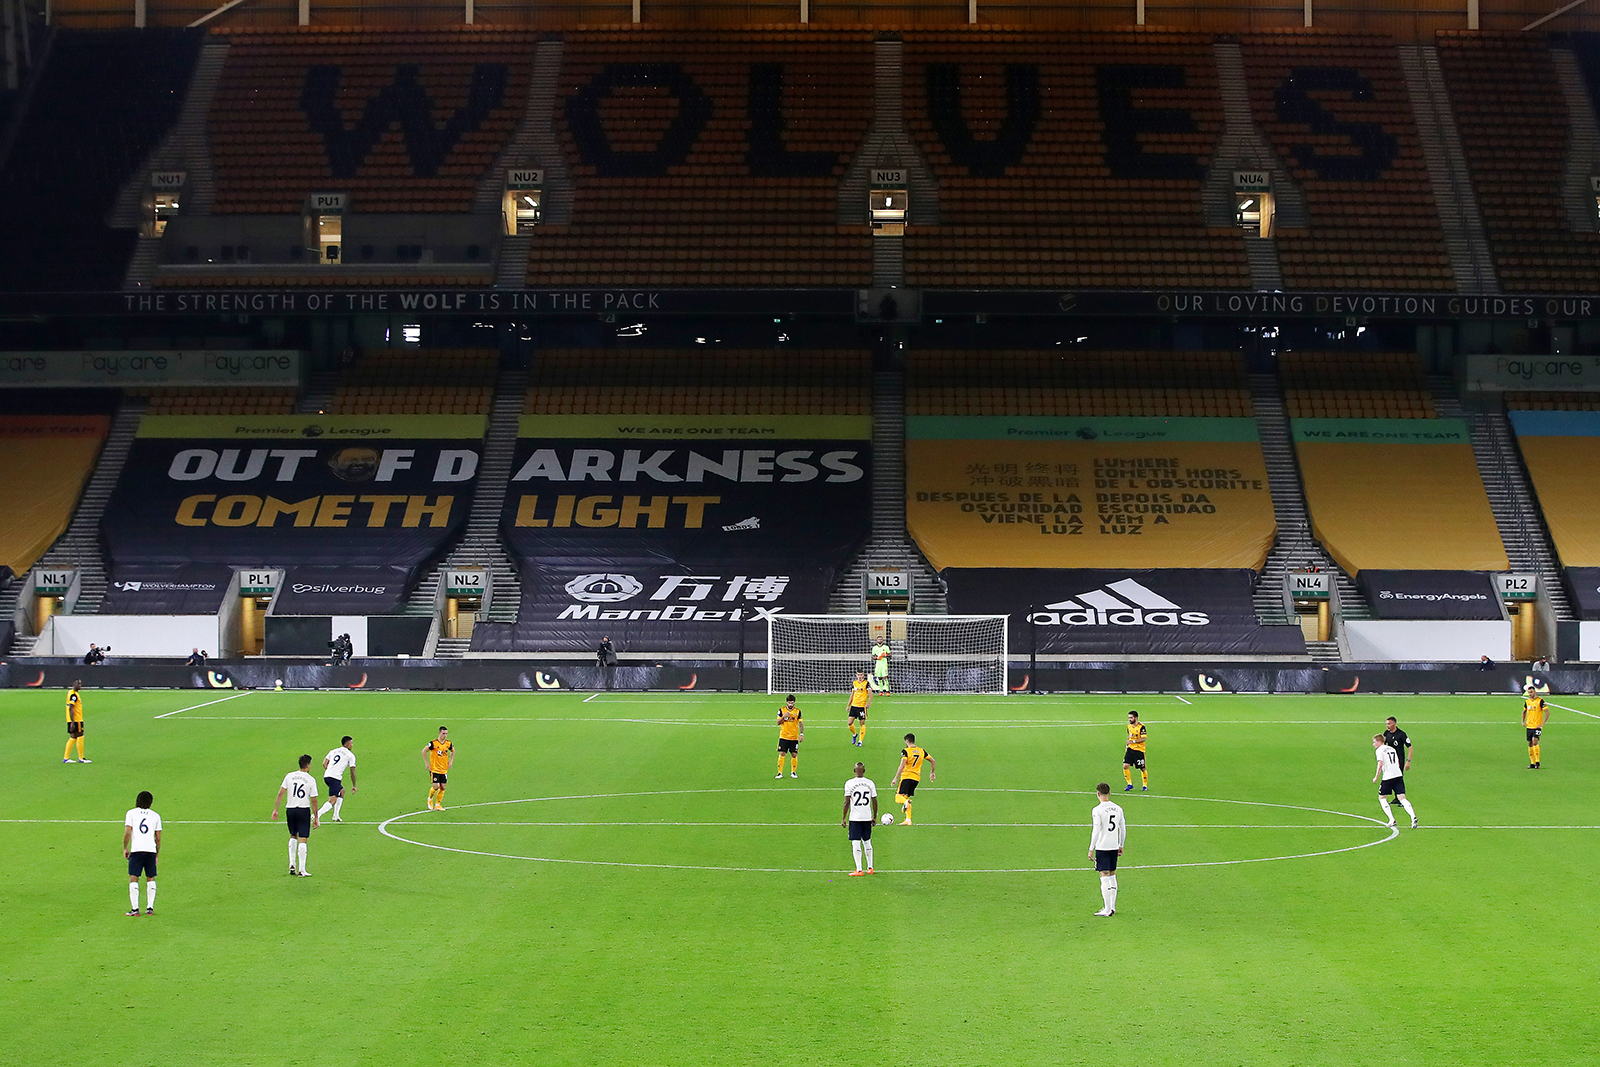 Premier League kickoff between Wolverhampton Wanderers and Manchester City to an empty Molineux stadium in Wolverhampton, England, on September 21.